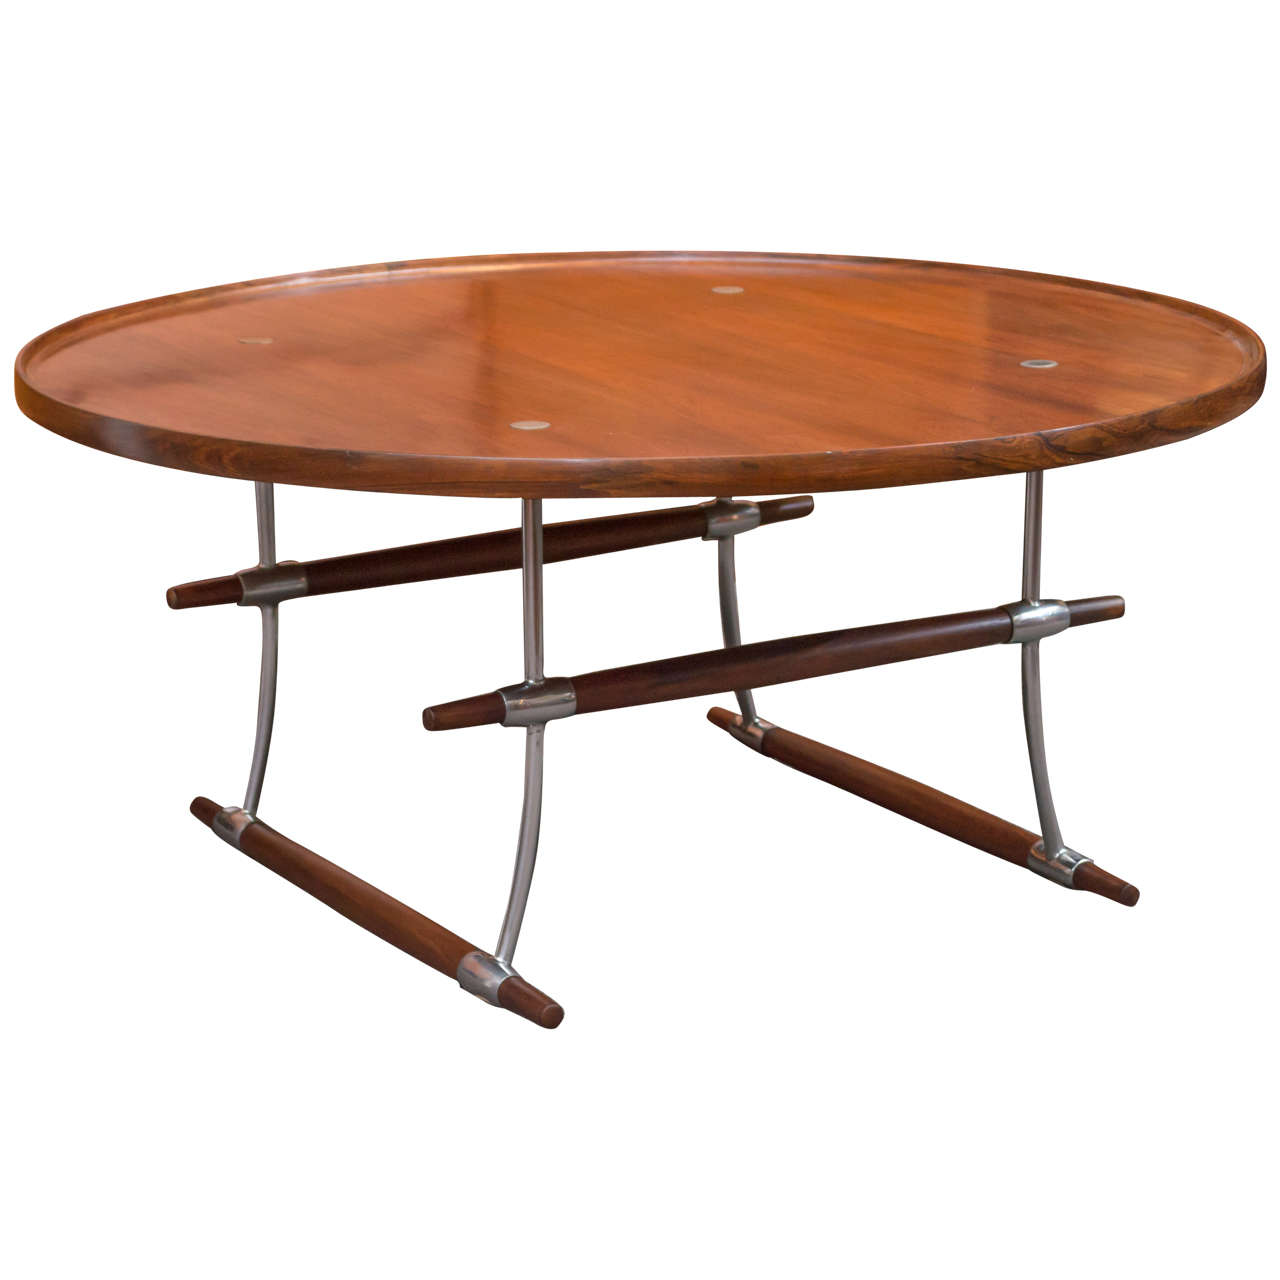 Jens H Quistgaard Rosewood Stokke Coffee Table At 1stdibs